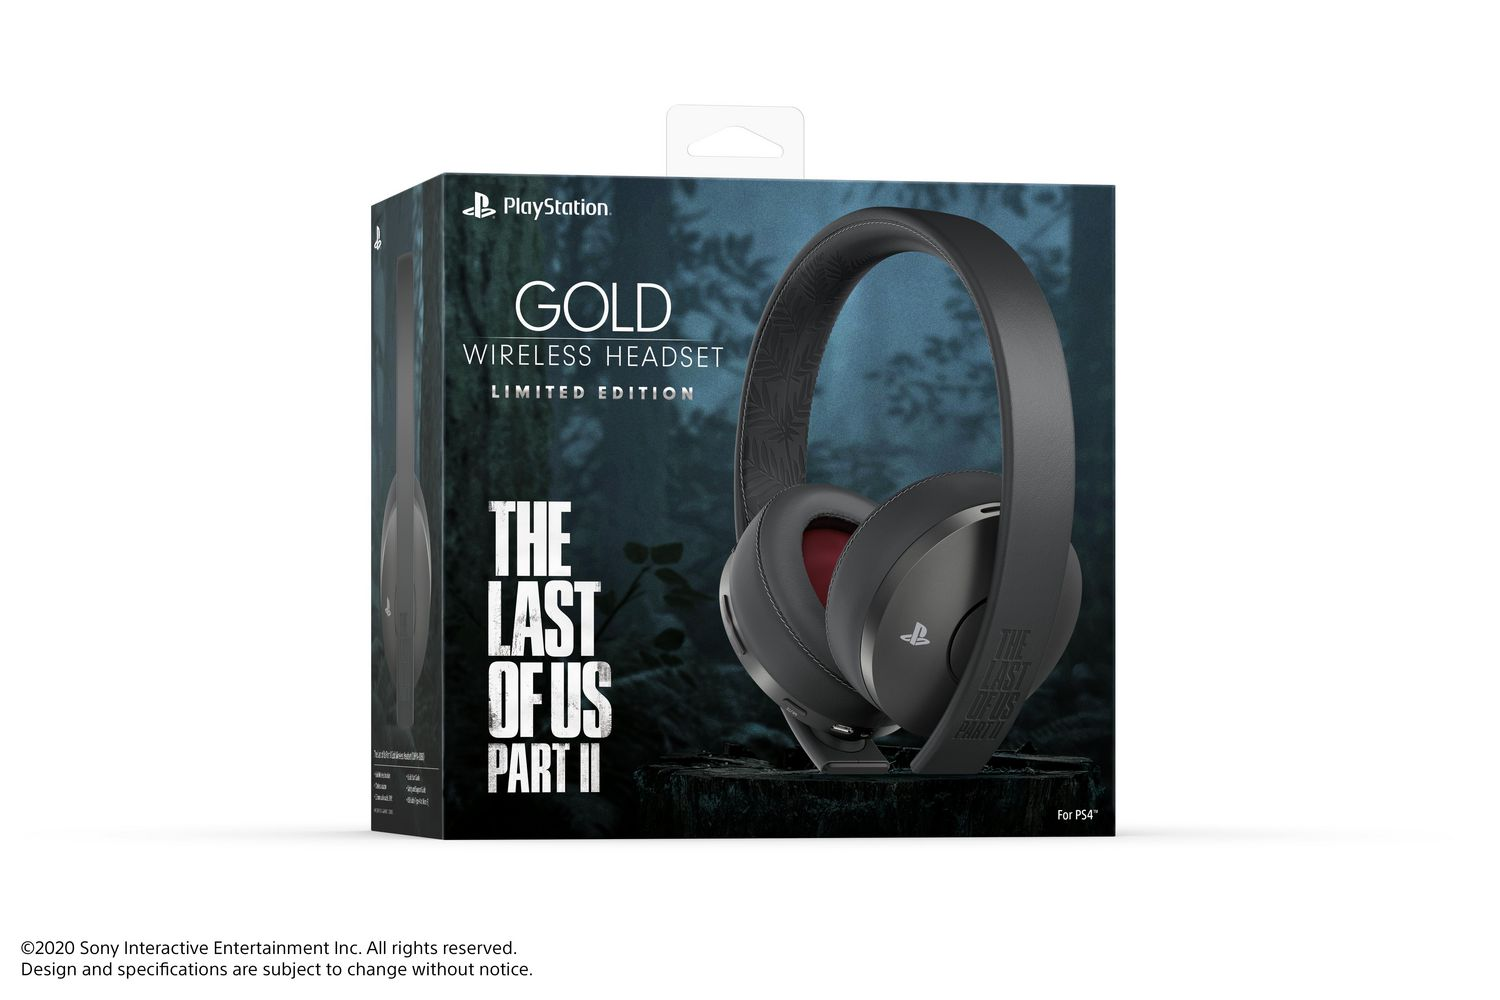 Gold Wireless Headset – The Last of Us Part II Limited Edition (PS4)